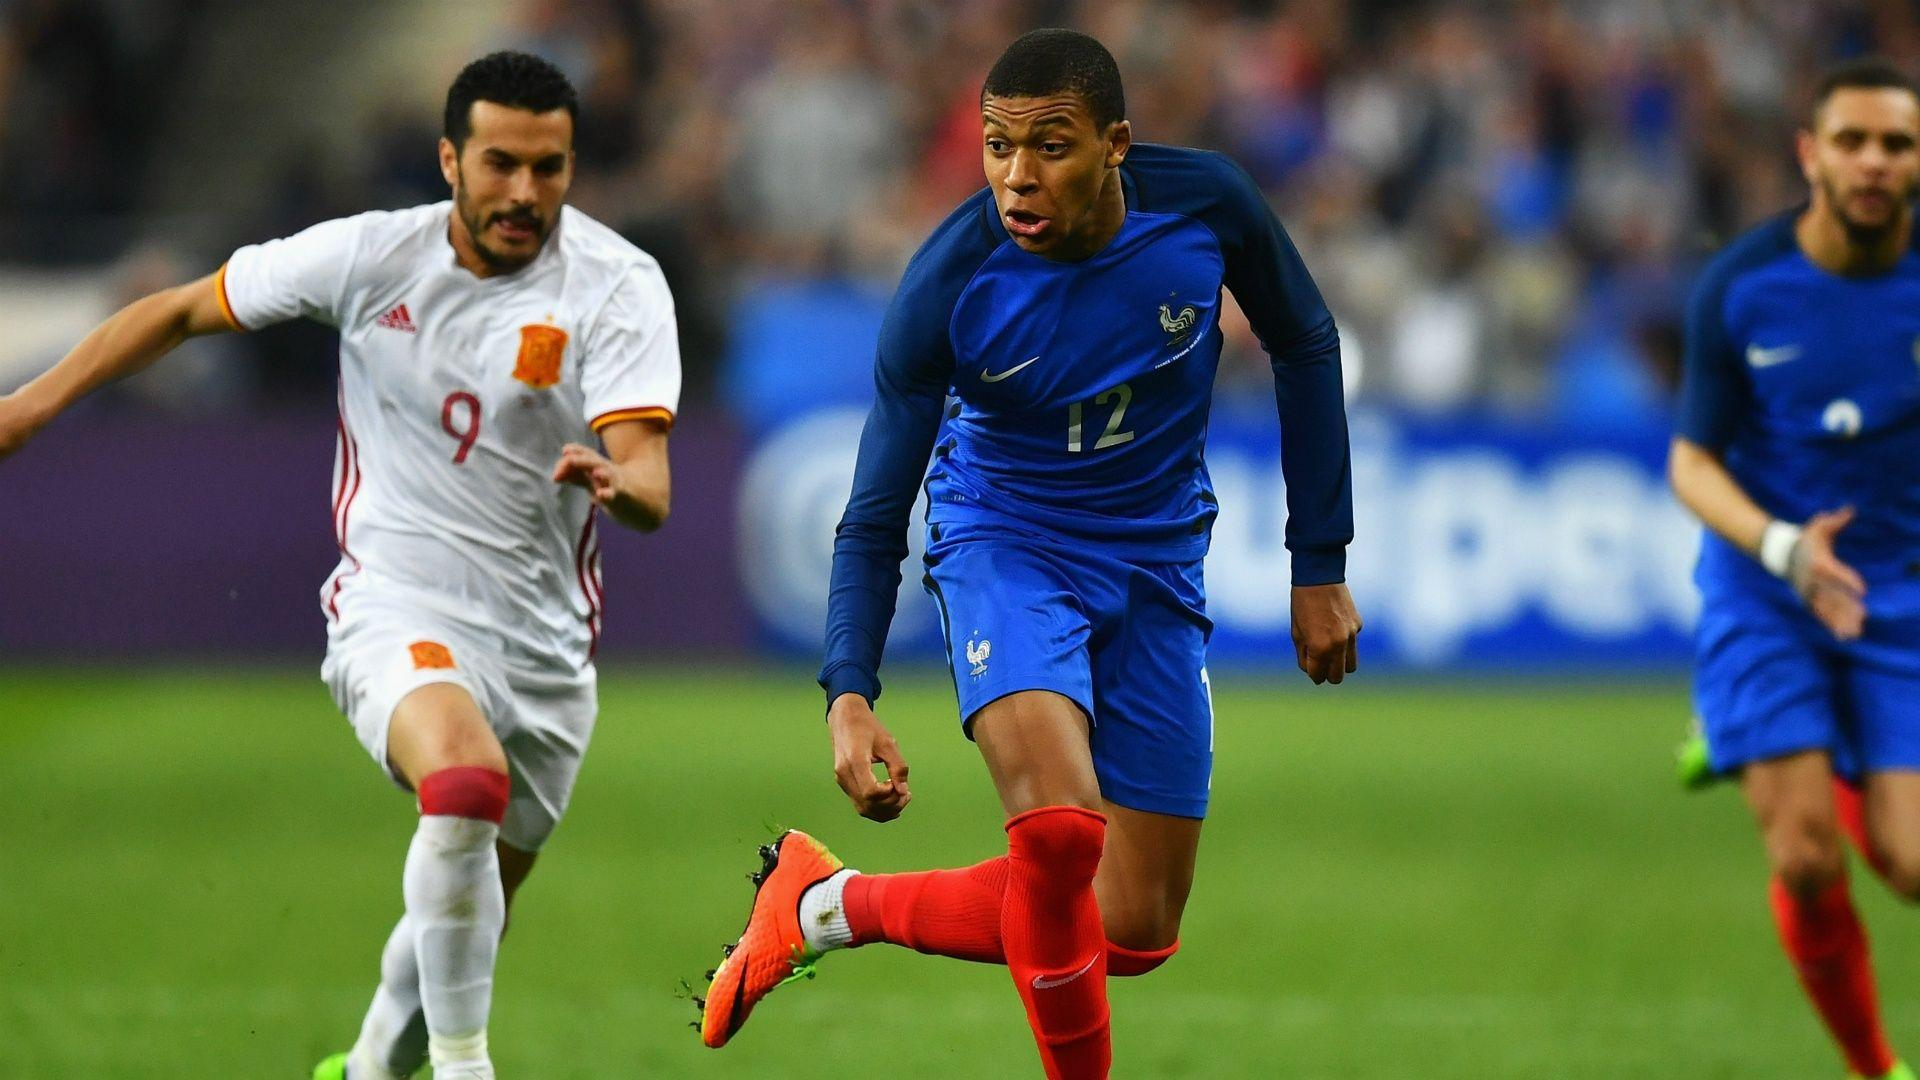 Mbappe: Real Madrid are a great team - BeSoccer